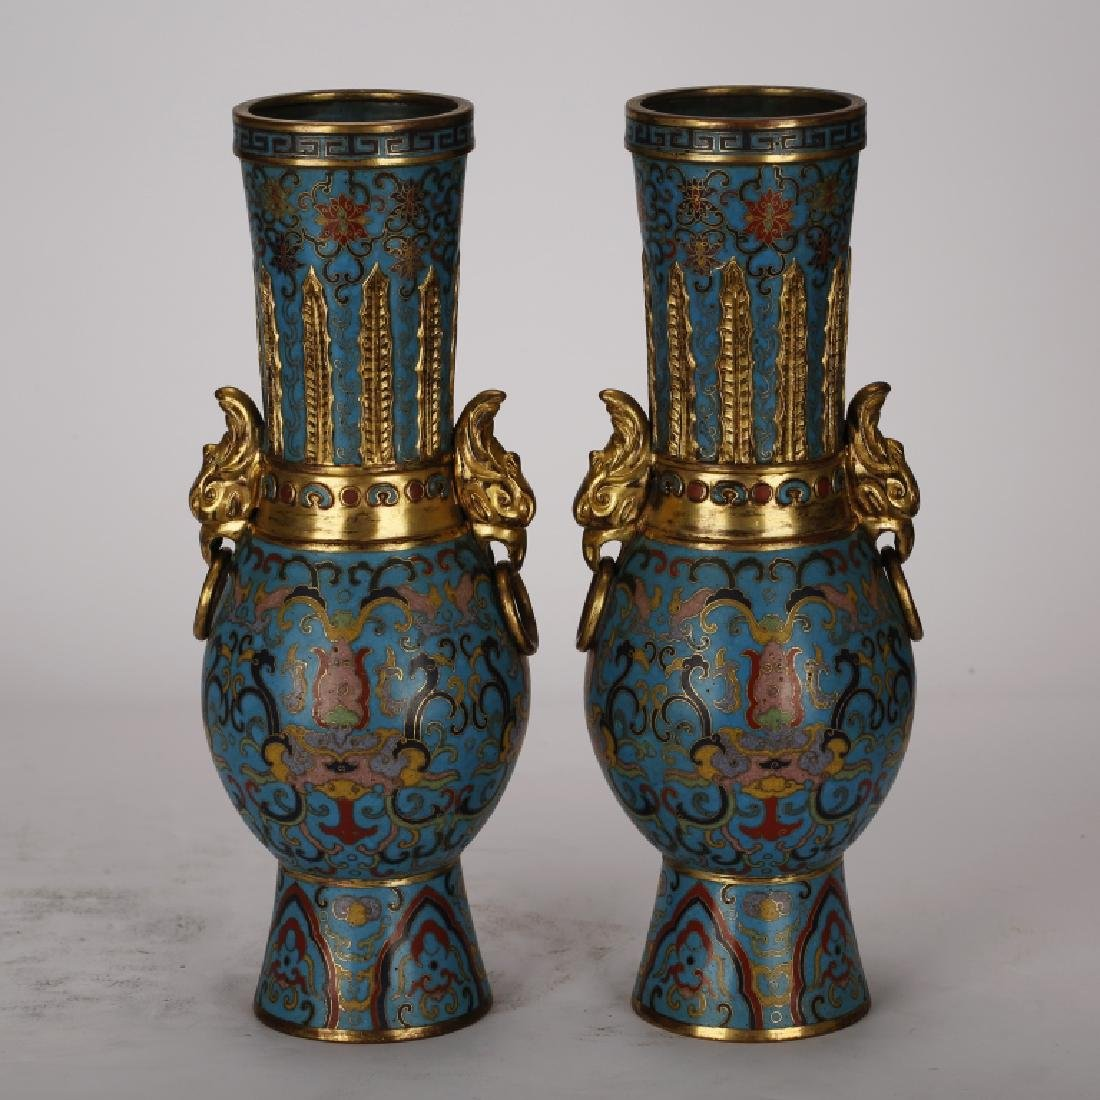 PAIR OF CHINESE CLOISONNE GILT VASES